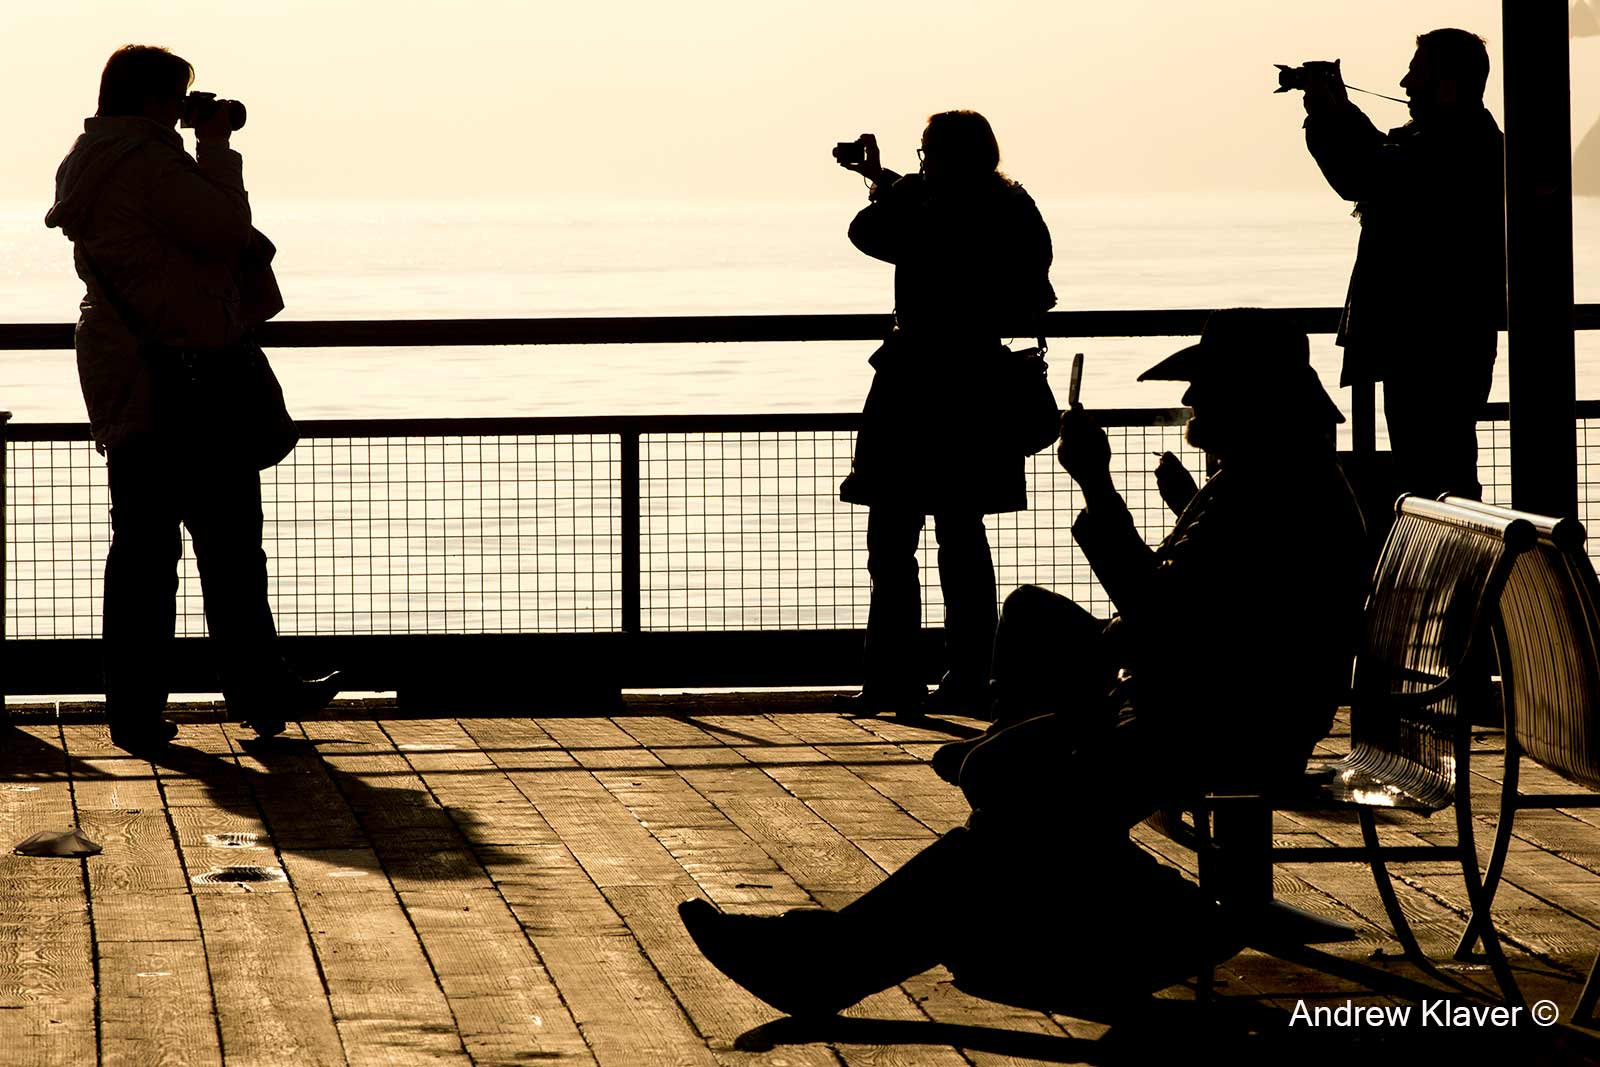 Silhouettes at the Quay